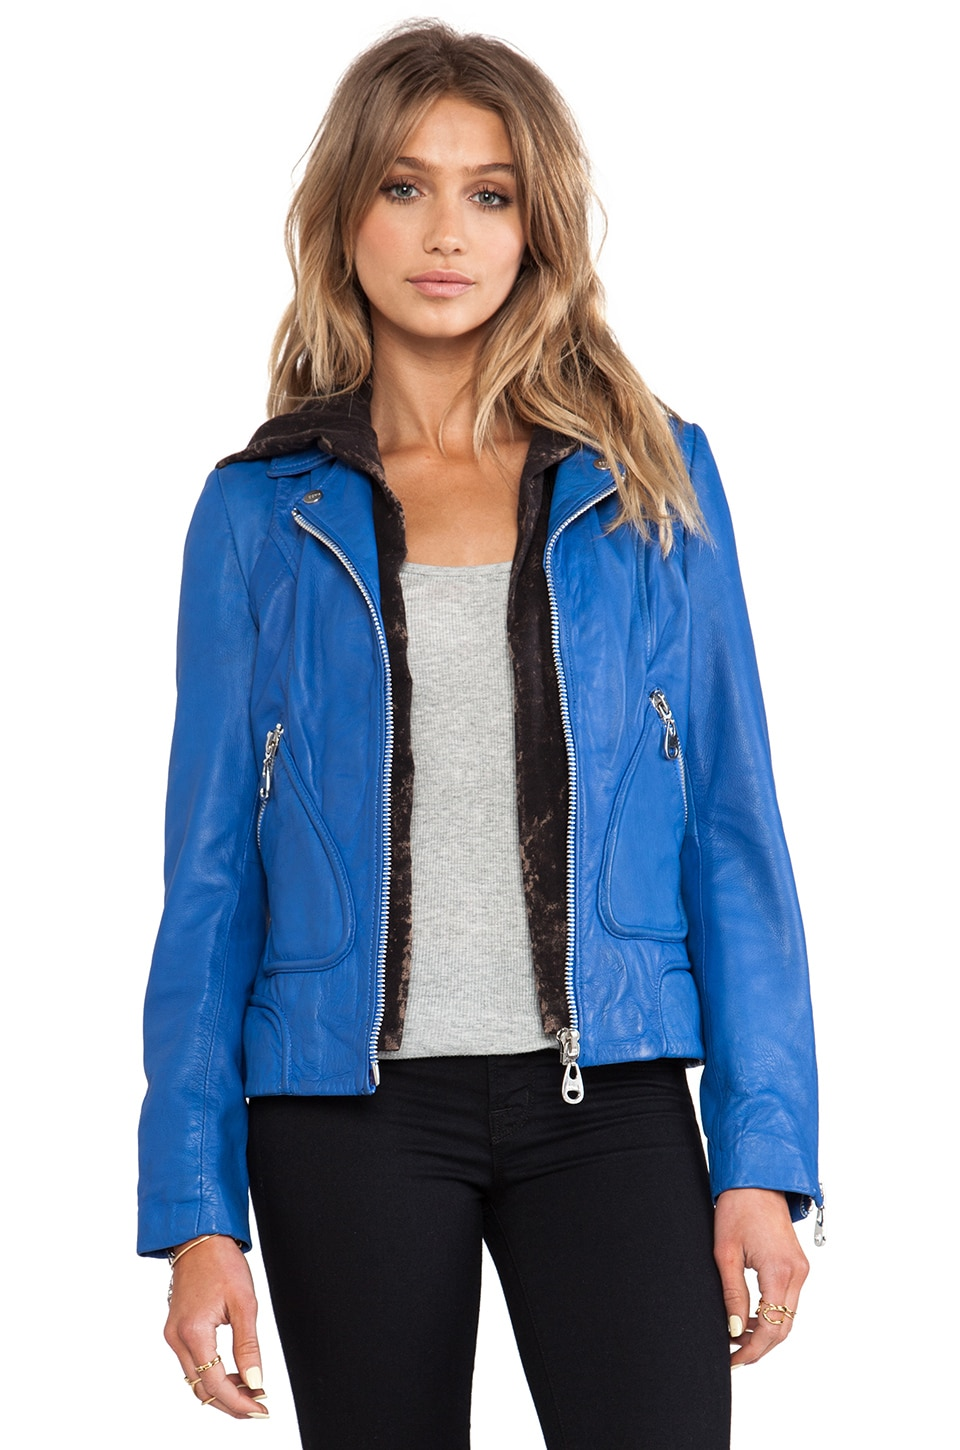 DOMA Washed Lamb Leather Jacket with Detachable Hood in Electric Blue